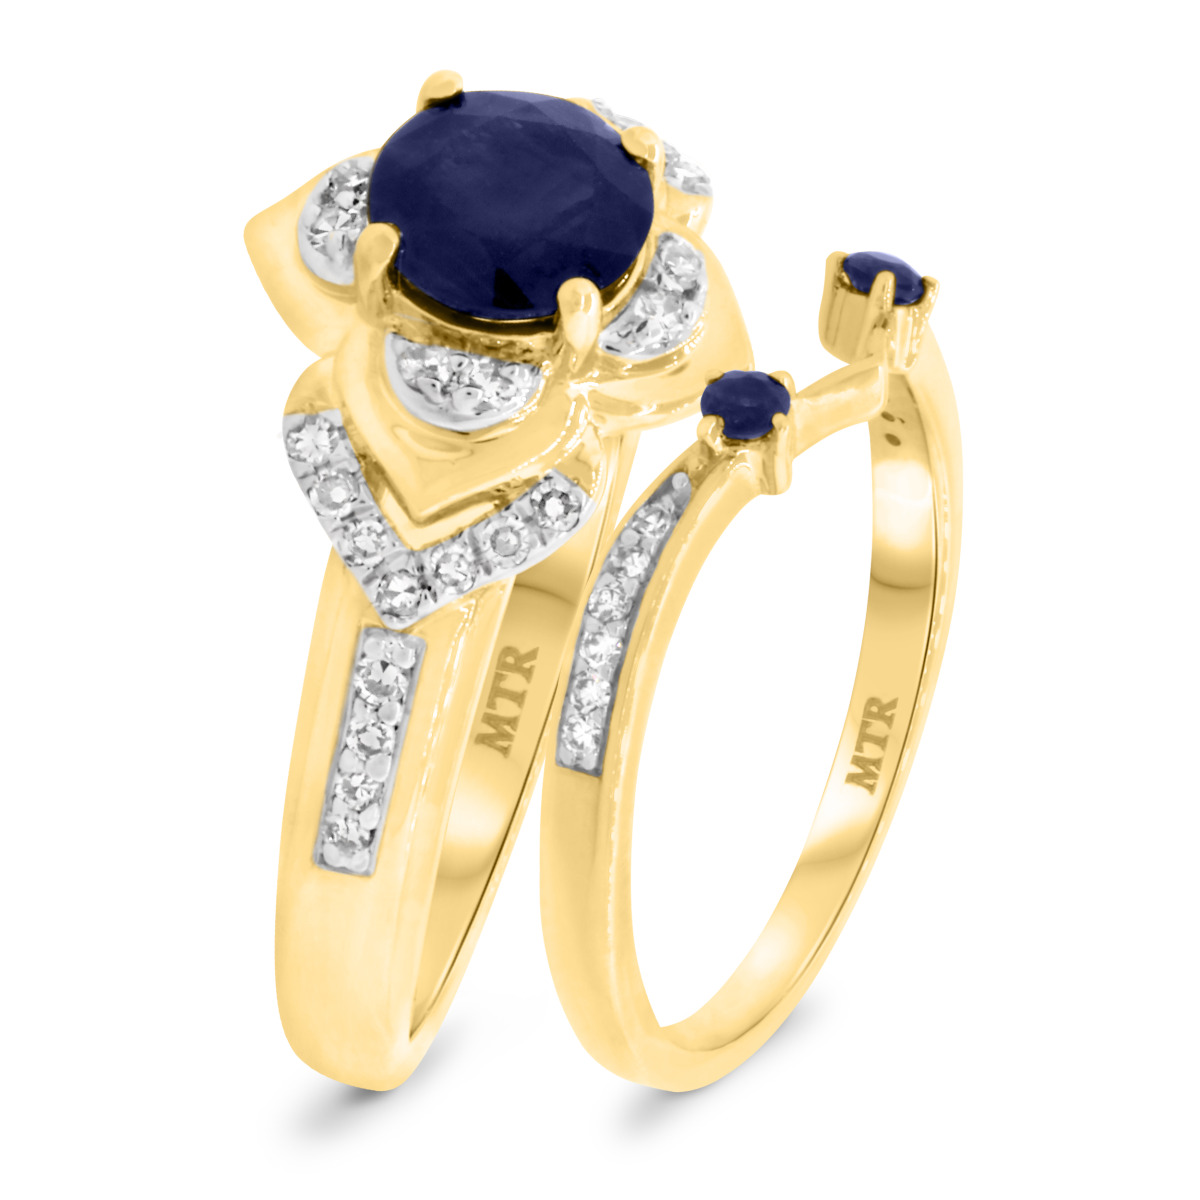 1 1/4 CT. T.W. Sapphire Matching Bridal Ring Set 10K Yellow Gold